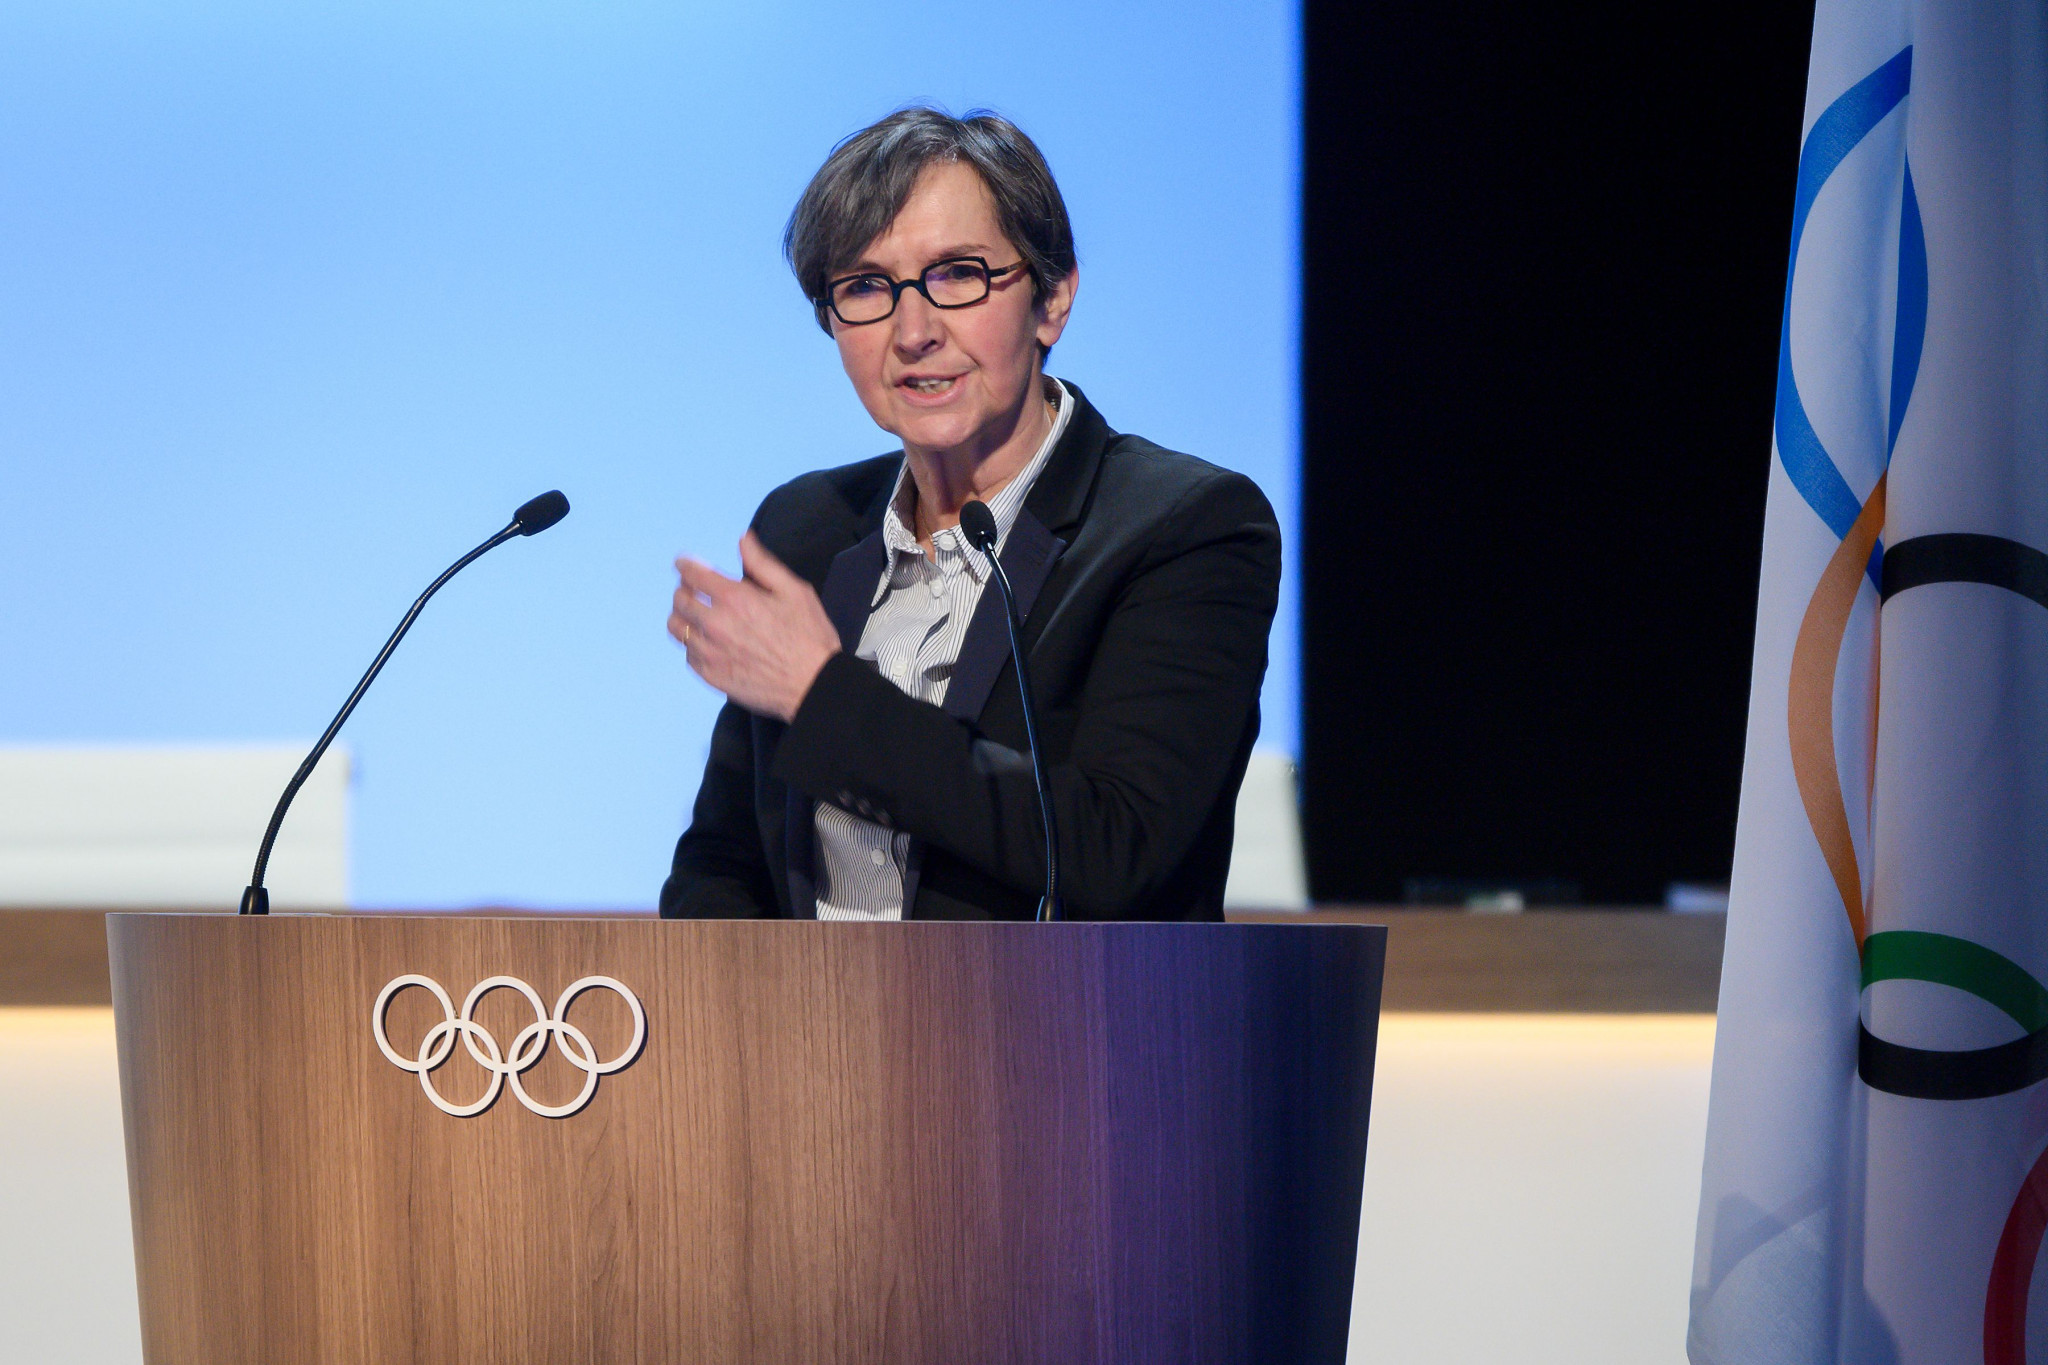 The ITA, led by Valérie Fourneyron, has been securing partnerships with International Federations ©Getty Images